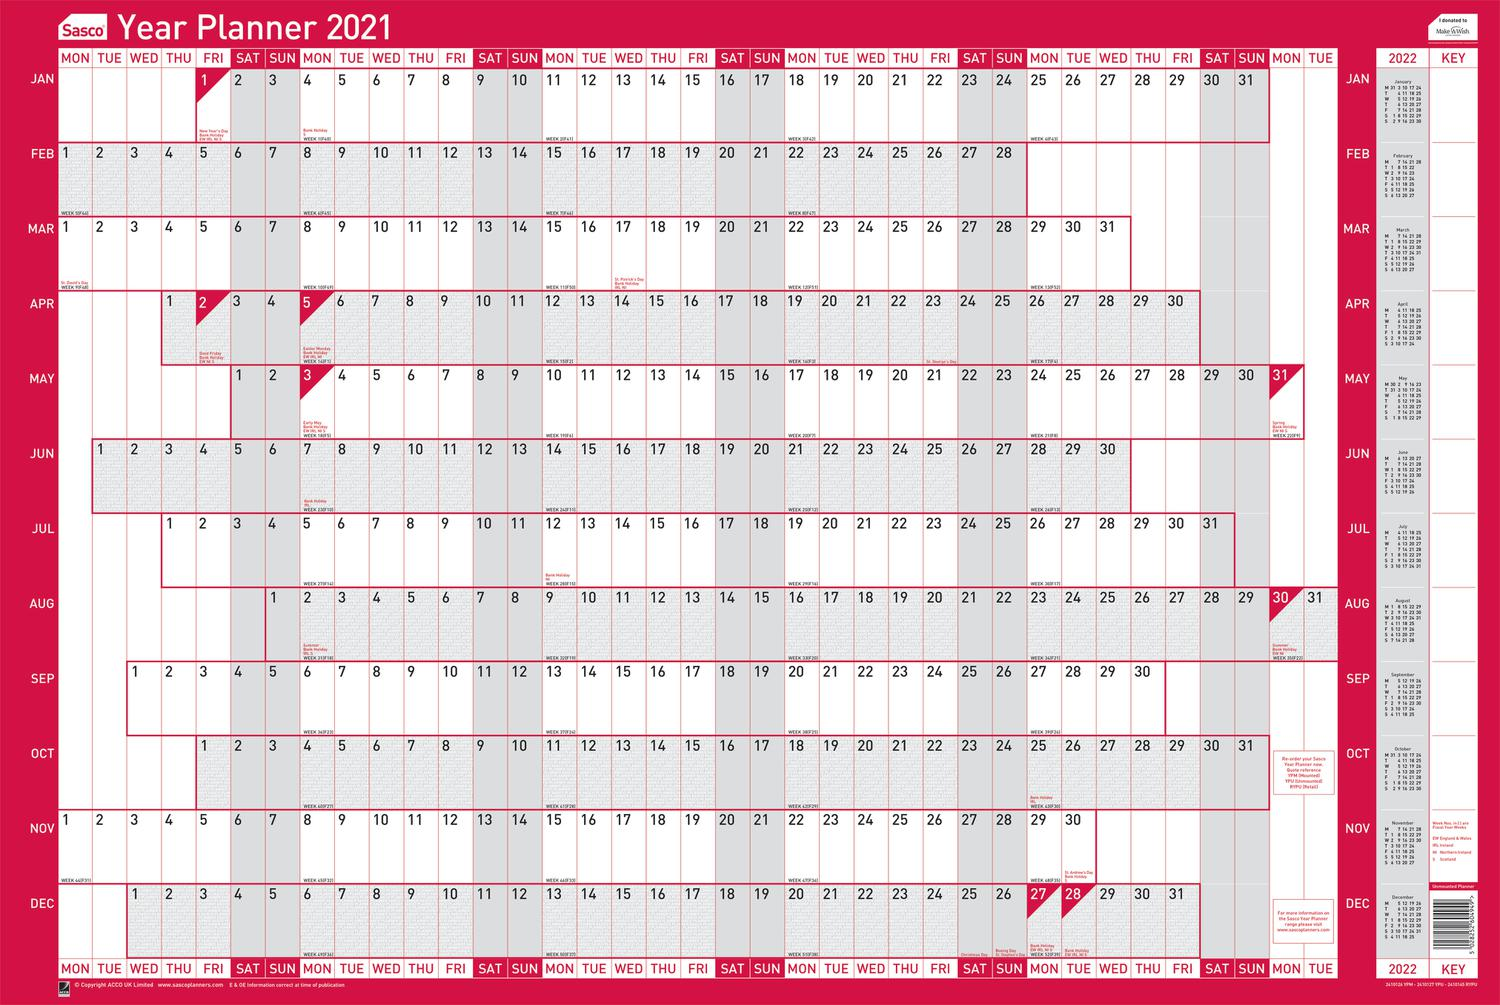 Planners Sasco Year Planner Unmounted Landscape 2021 (Pack 10)